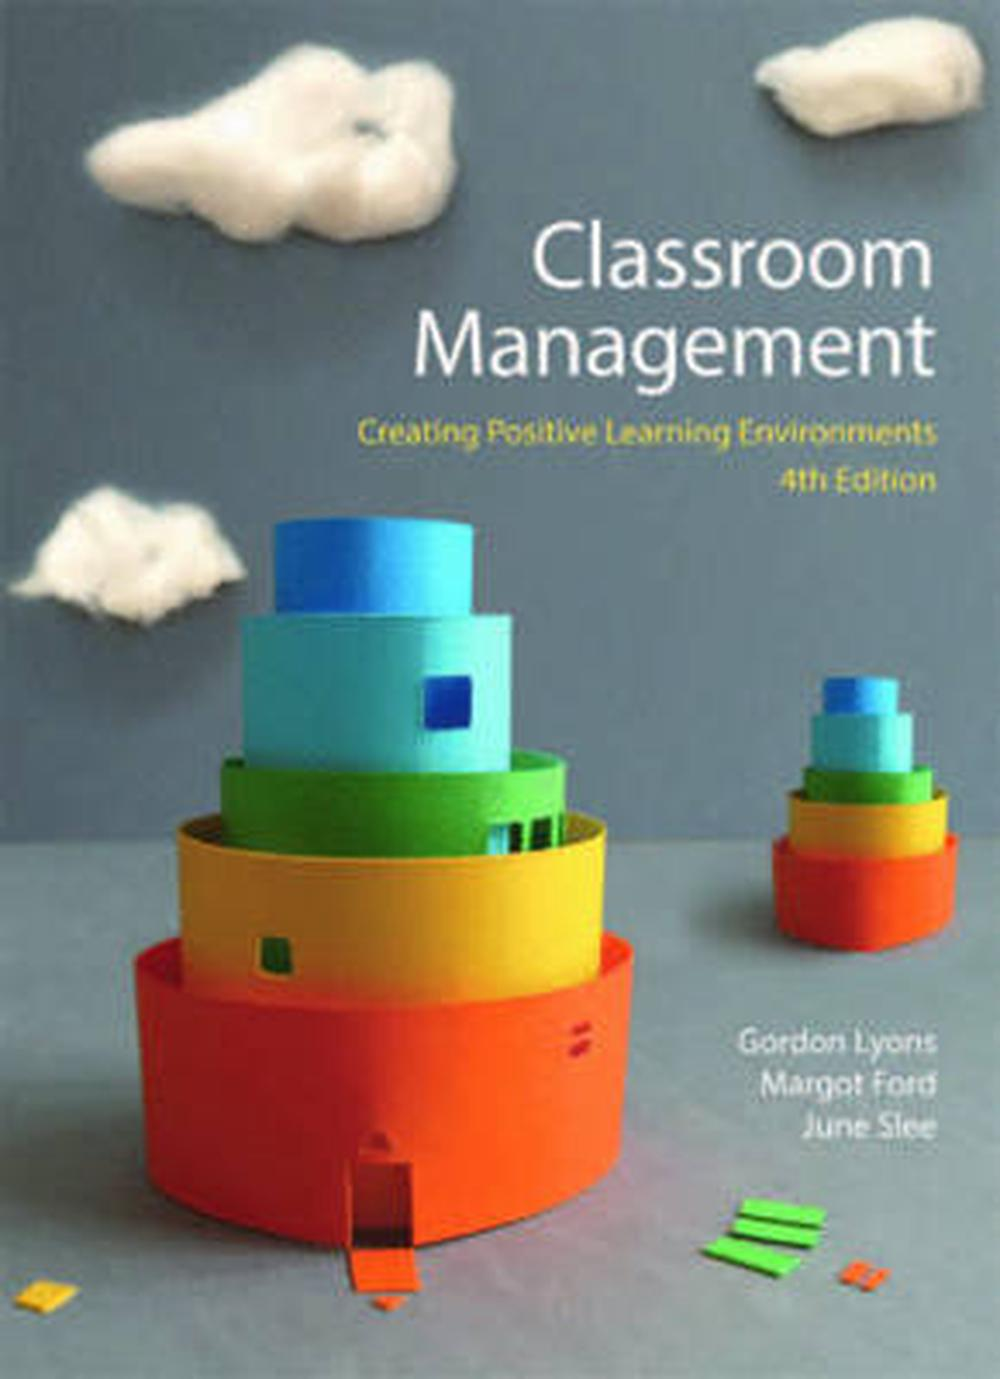 Classroom Management, 4th Edition